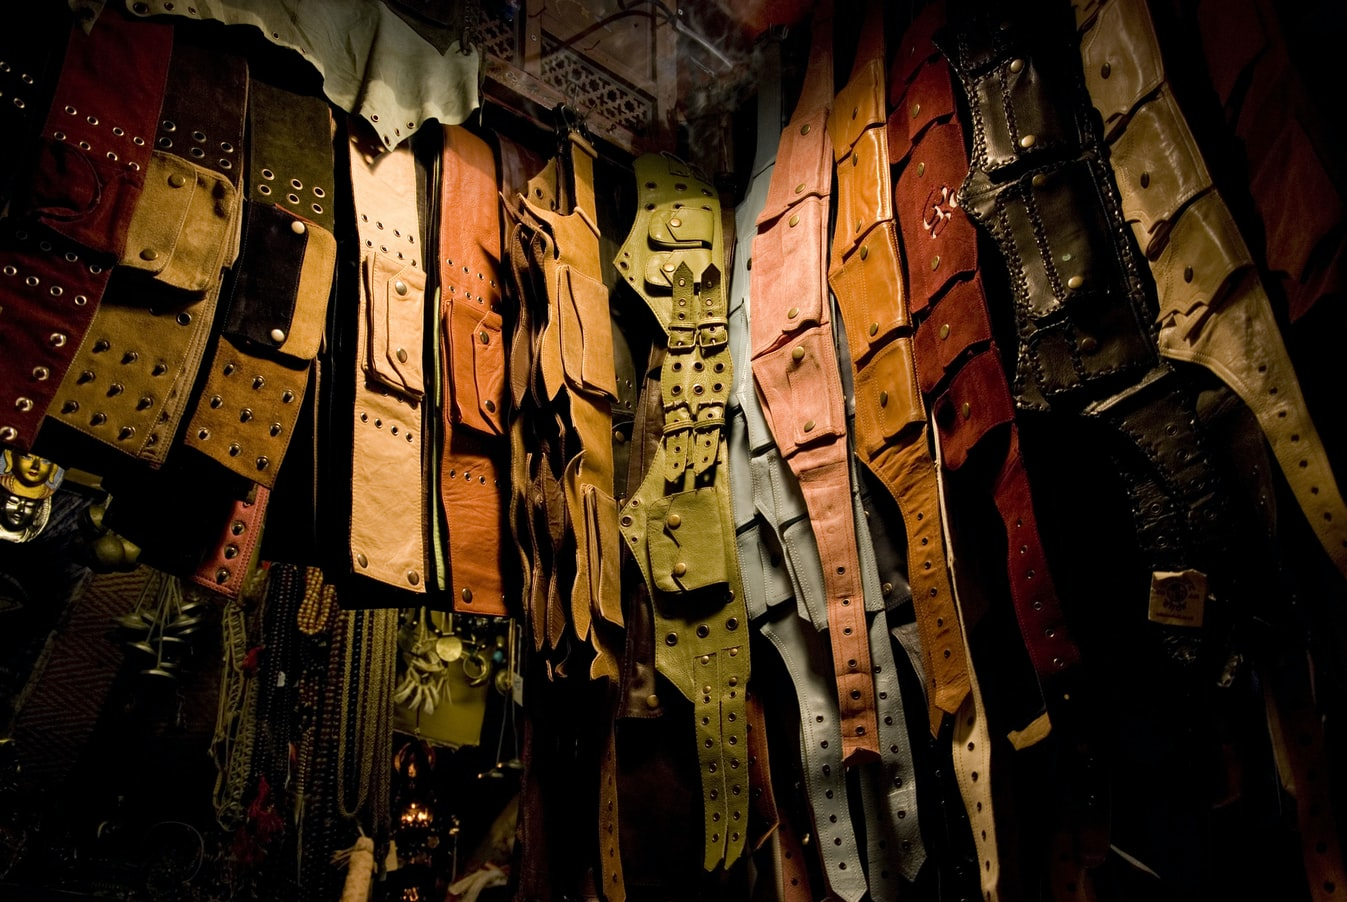 Handmade Leather Goods: High Quality Products that Never Go Out of Style